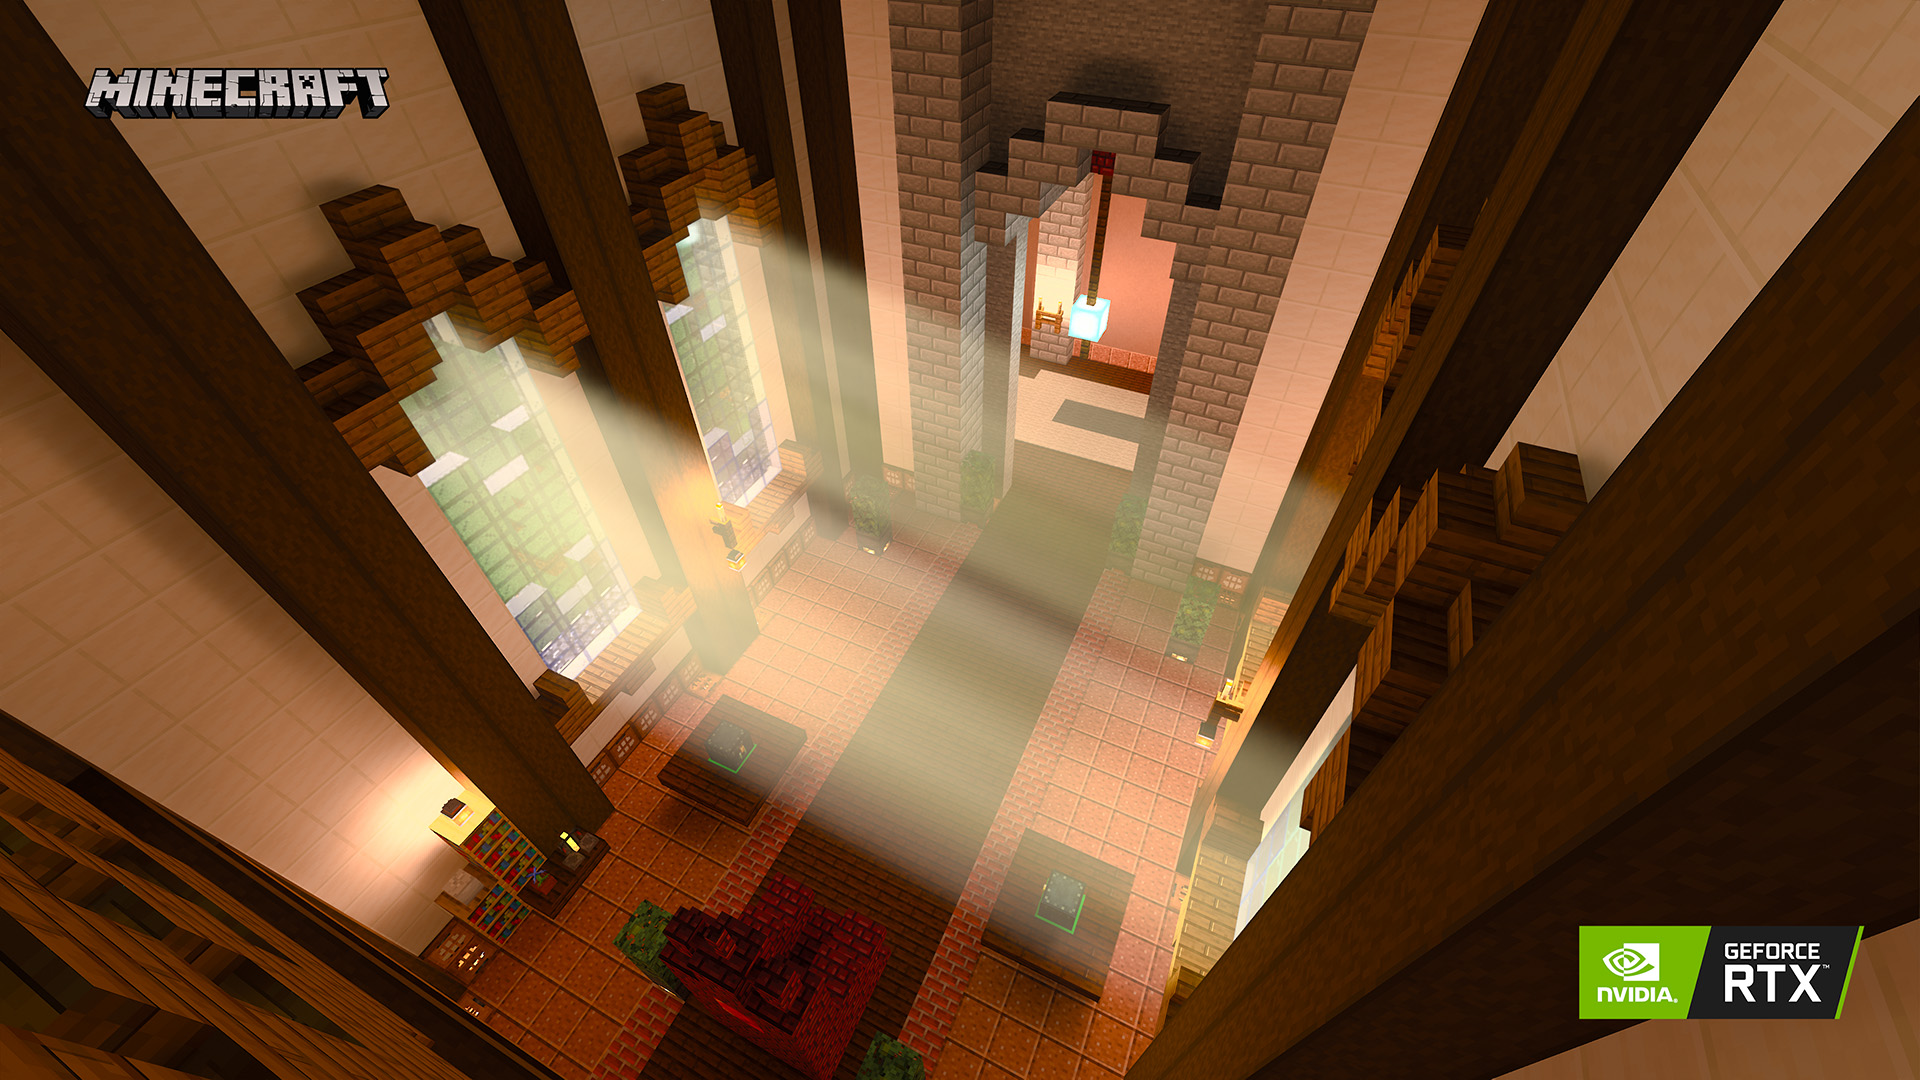 how to enable ray tracing minecraft